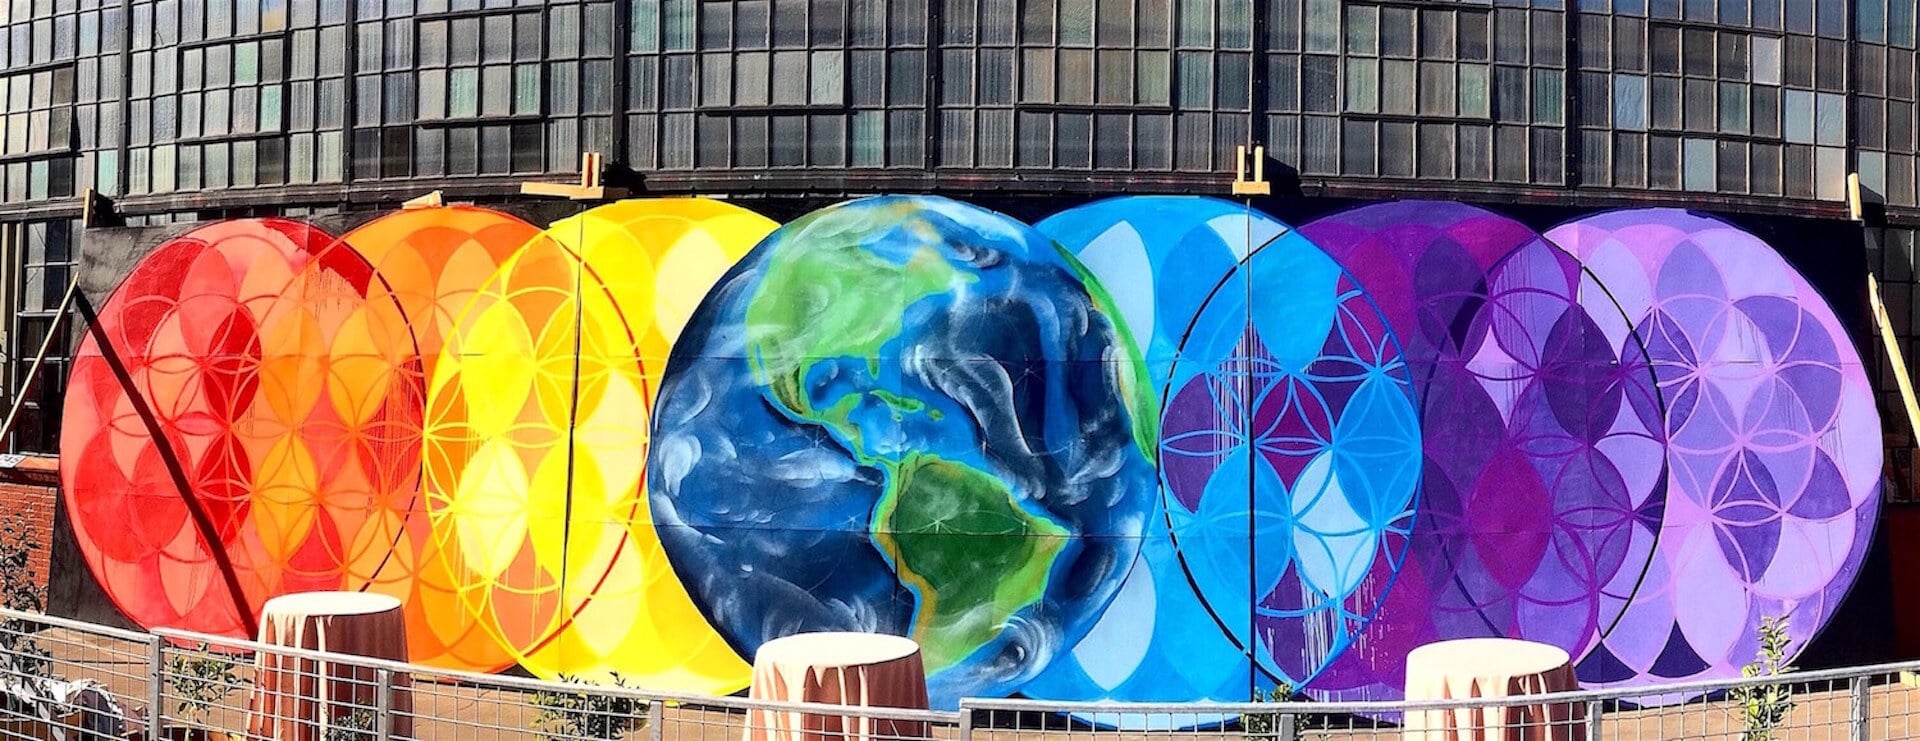 Commissioned Large-scale Mural for 109 World Launch | Berkeley USA, 2015